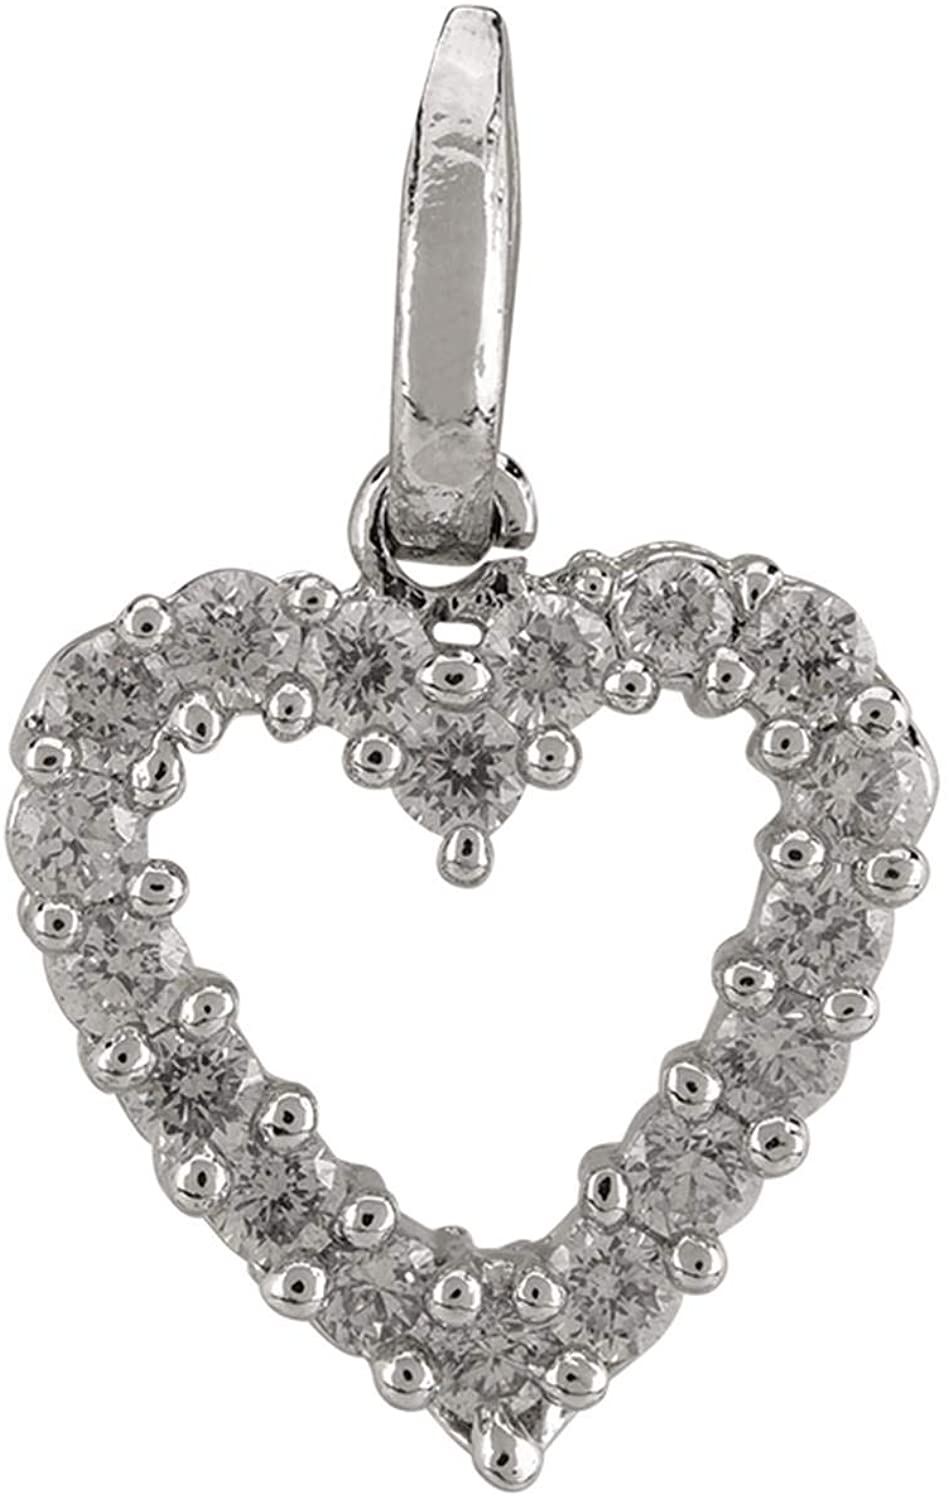 Efulgenz Silver Plated Cubic Zirconia Heart Love Pendant Chain Necklace Jewelry Valentine Gift